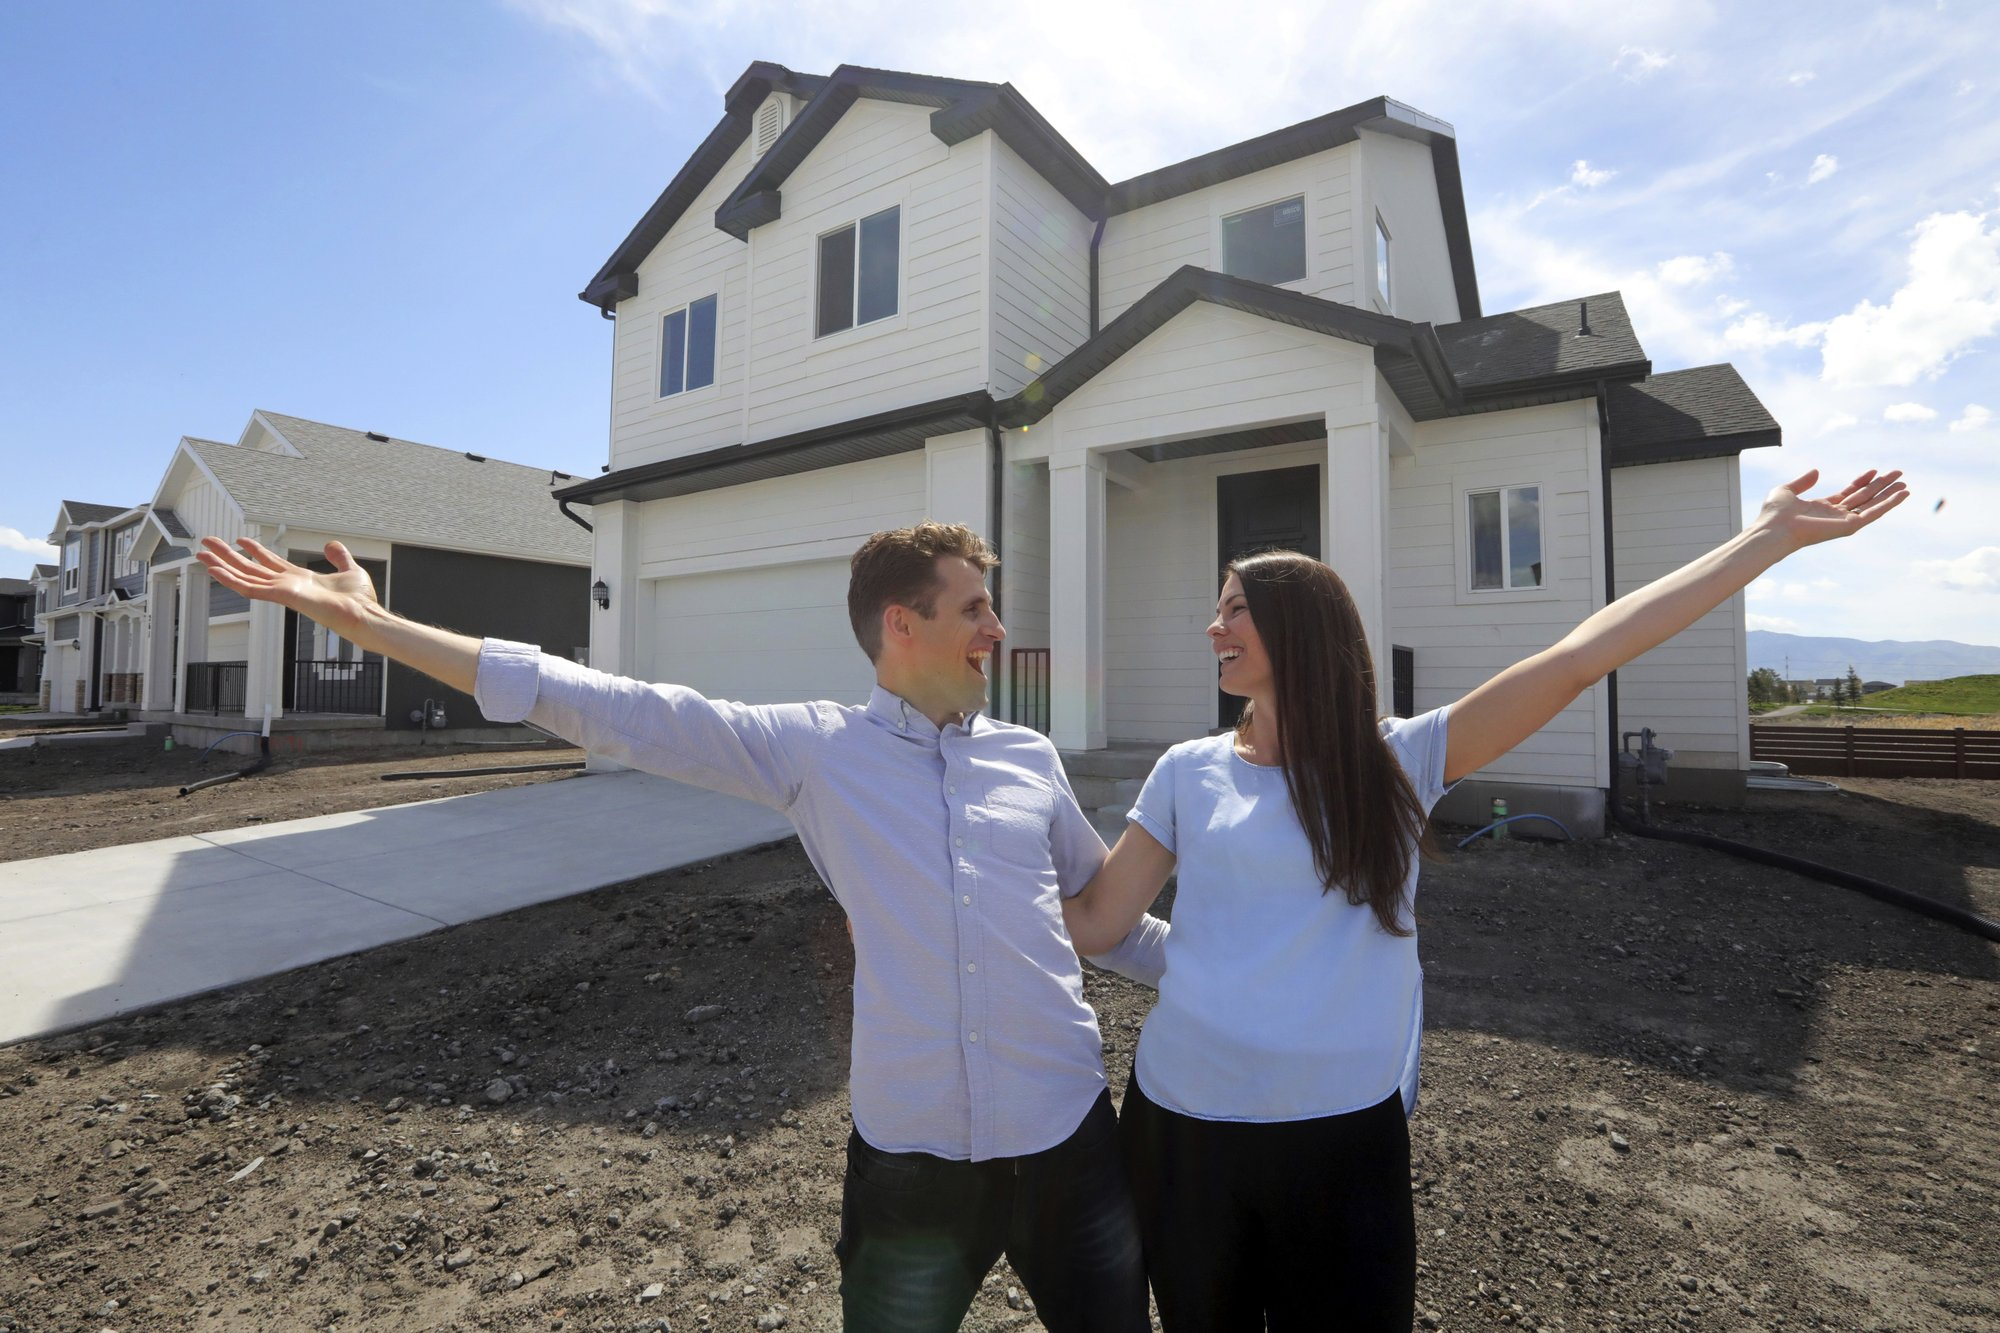 Young homebuyers scramble as prices rise faster than incomes